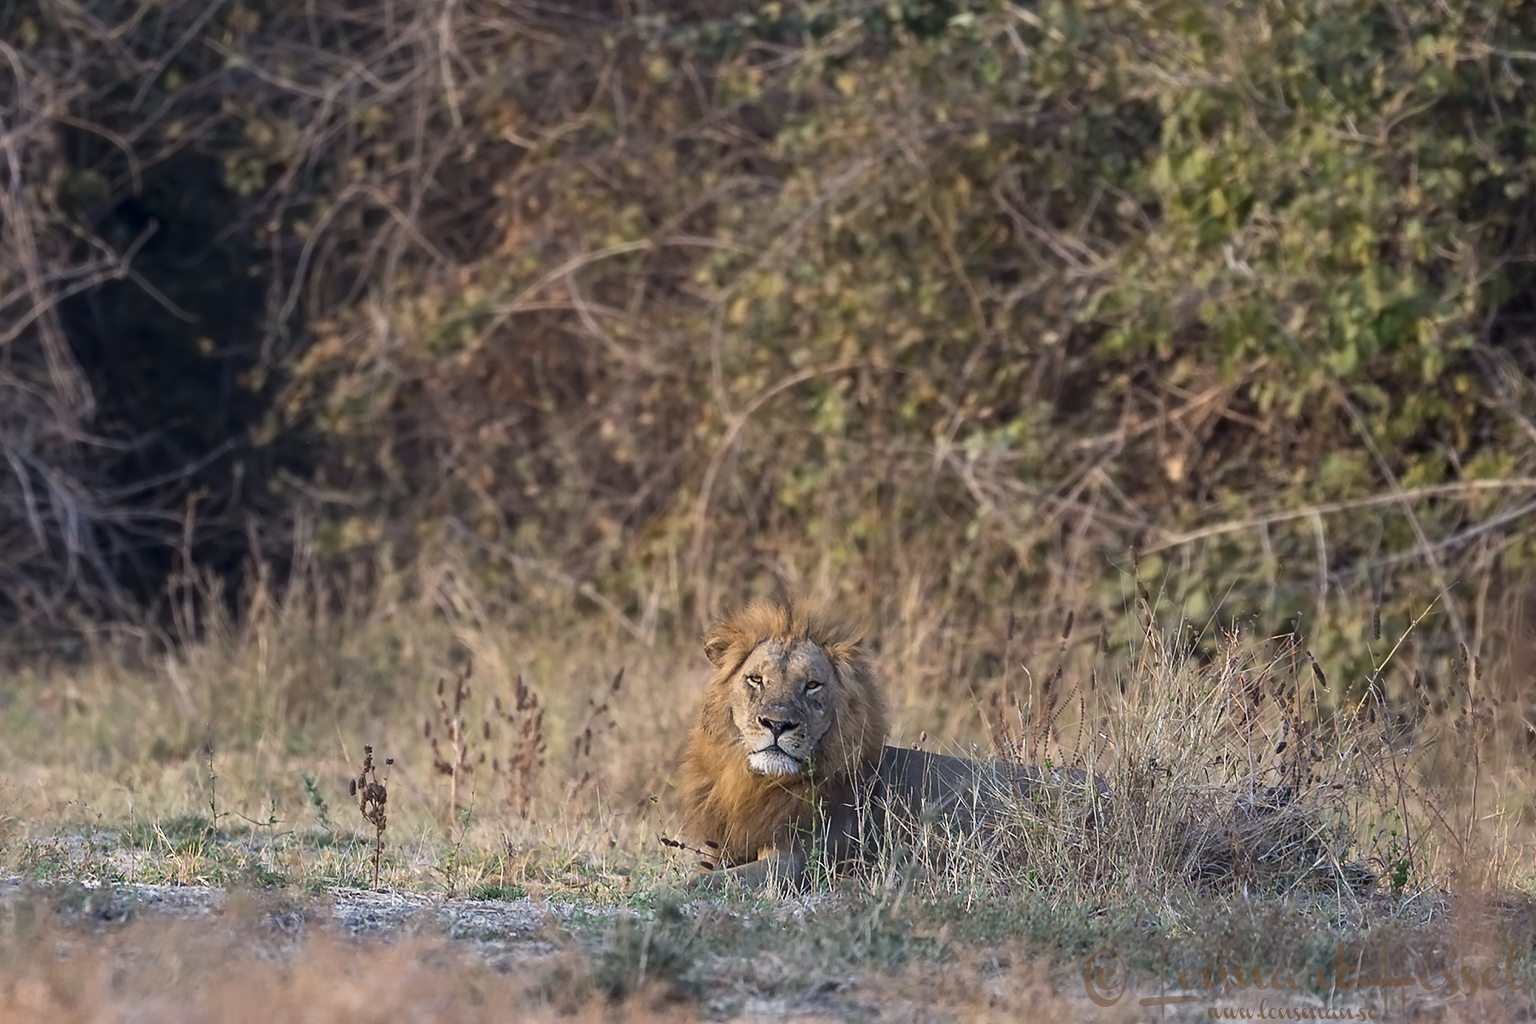 Male Lion Mana Pools National Park